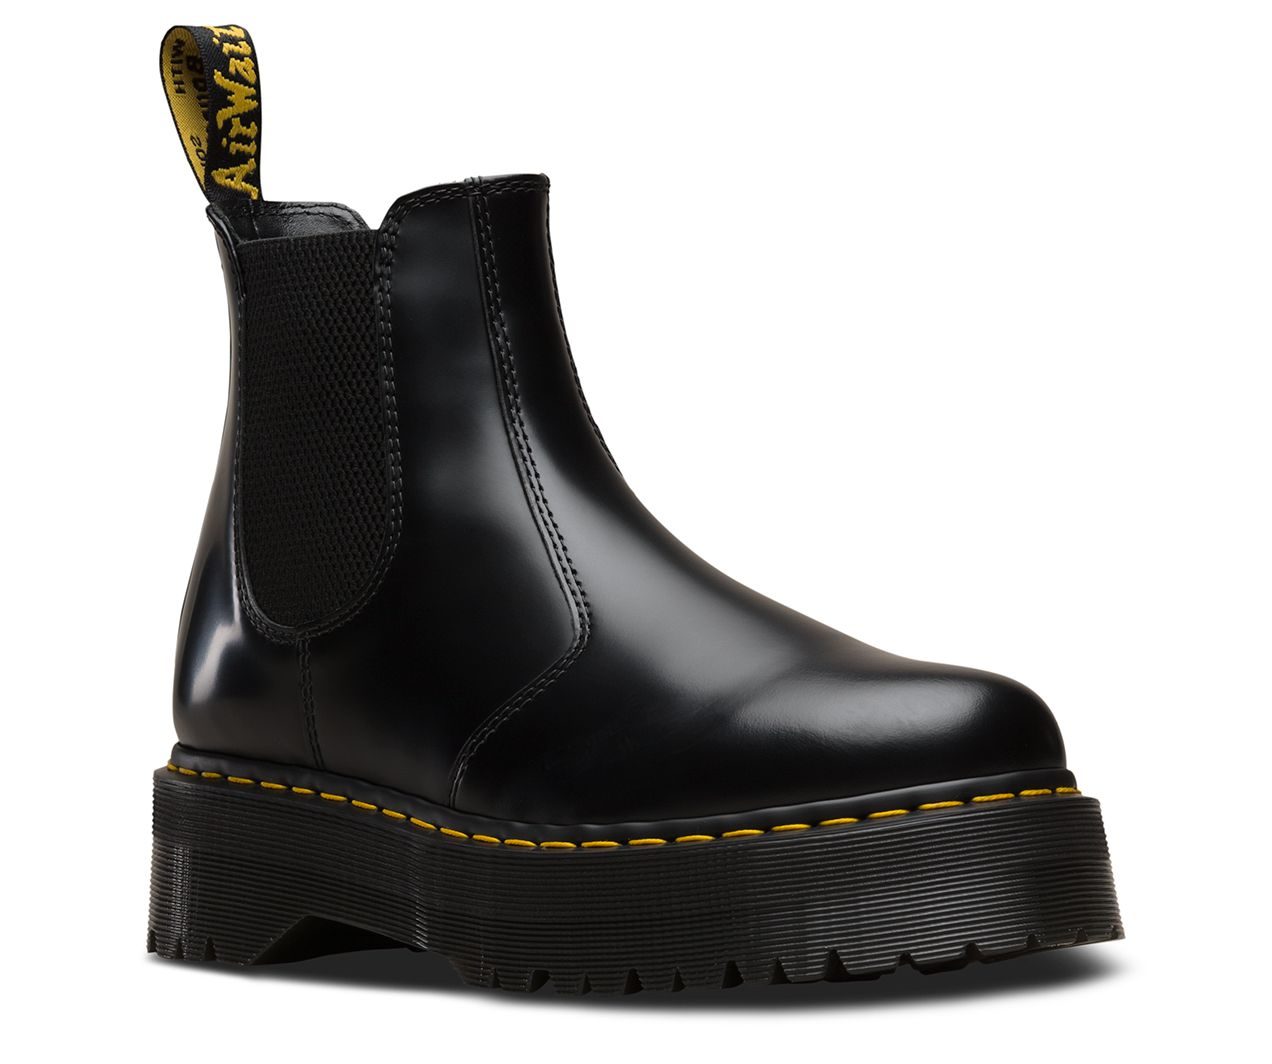 a8ef30c8547 DR MARTENS 2976 Quad in 2019 | wishlist - Chelsea boots style ...